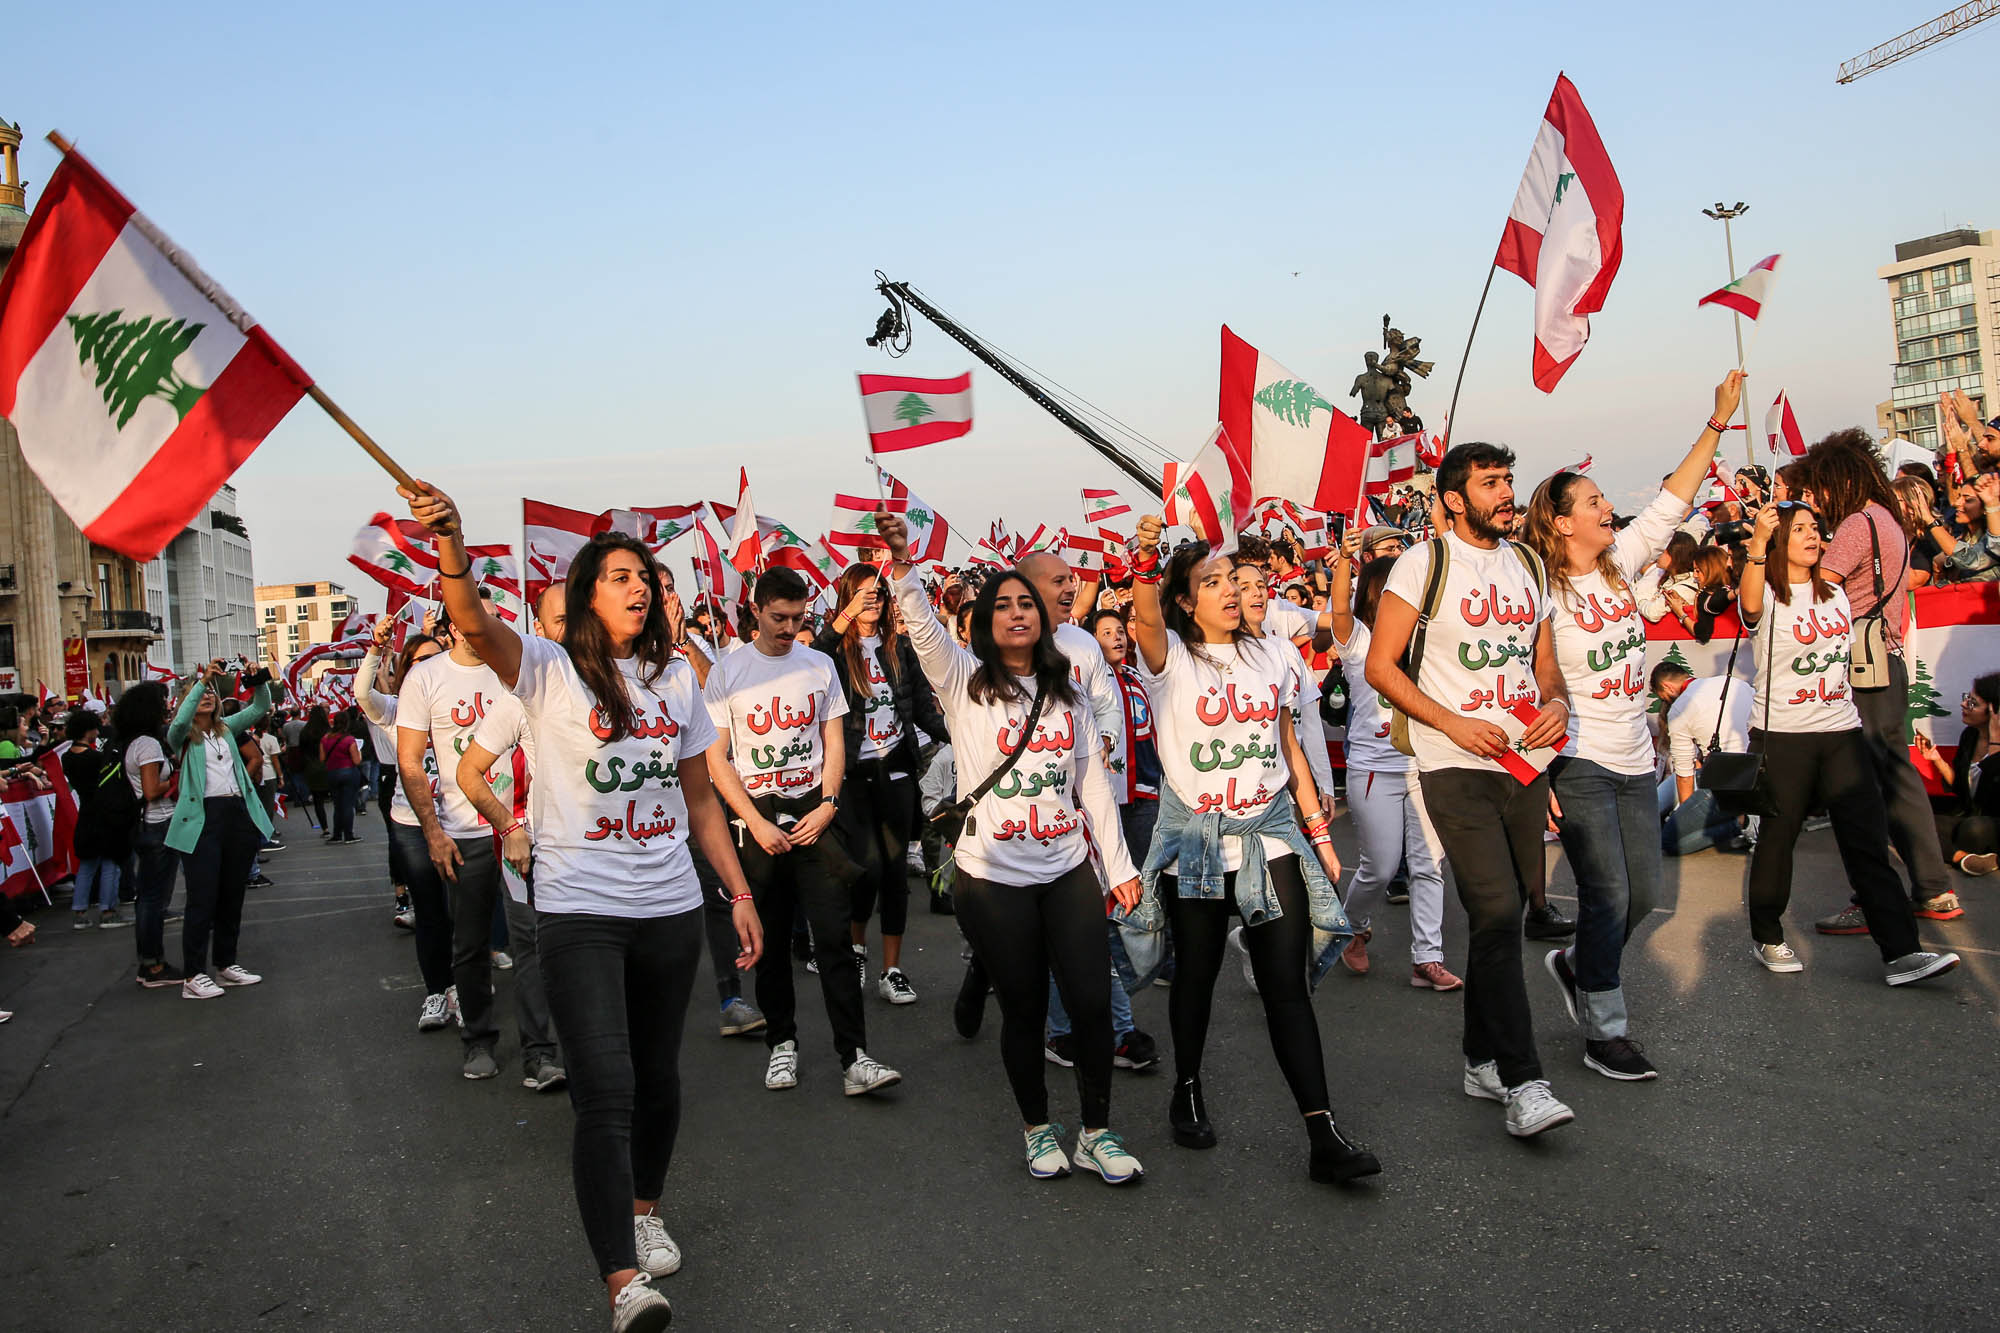 Beirut, Lebanon - November 22, 2019: Lebanese marching for Lebanon's Independence Day in a Civil Parade while protesting against the current government and corruption in the country. Editorial credit: Hiba Al Kallas / Shutterstock.com.